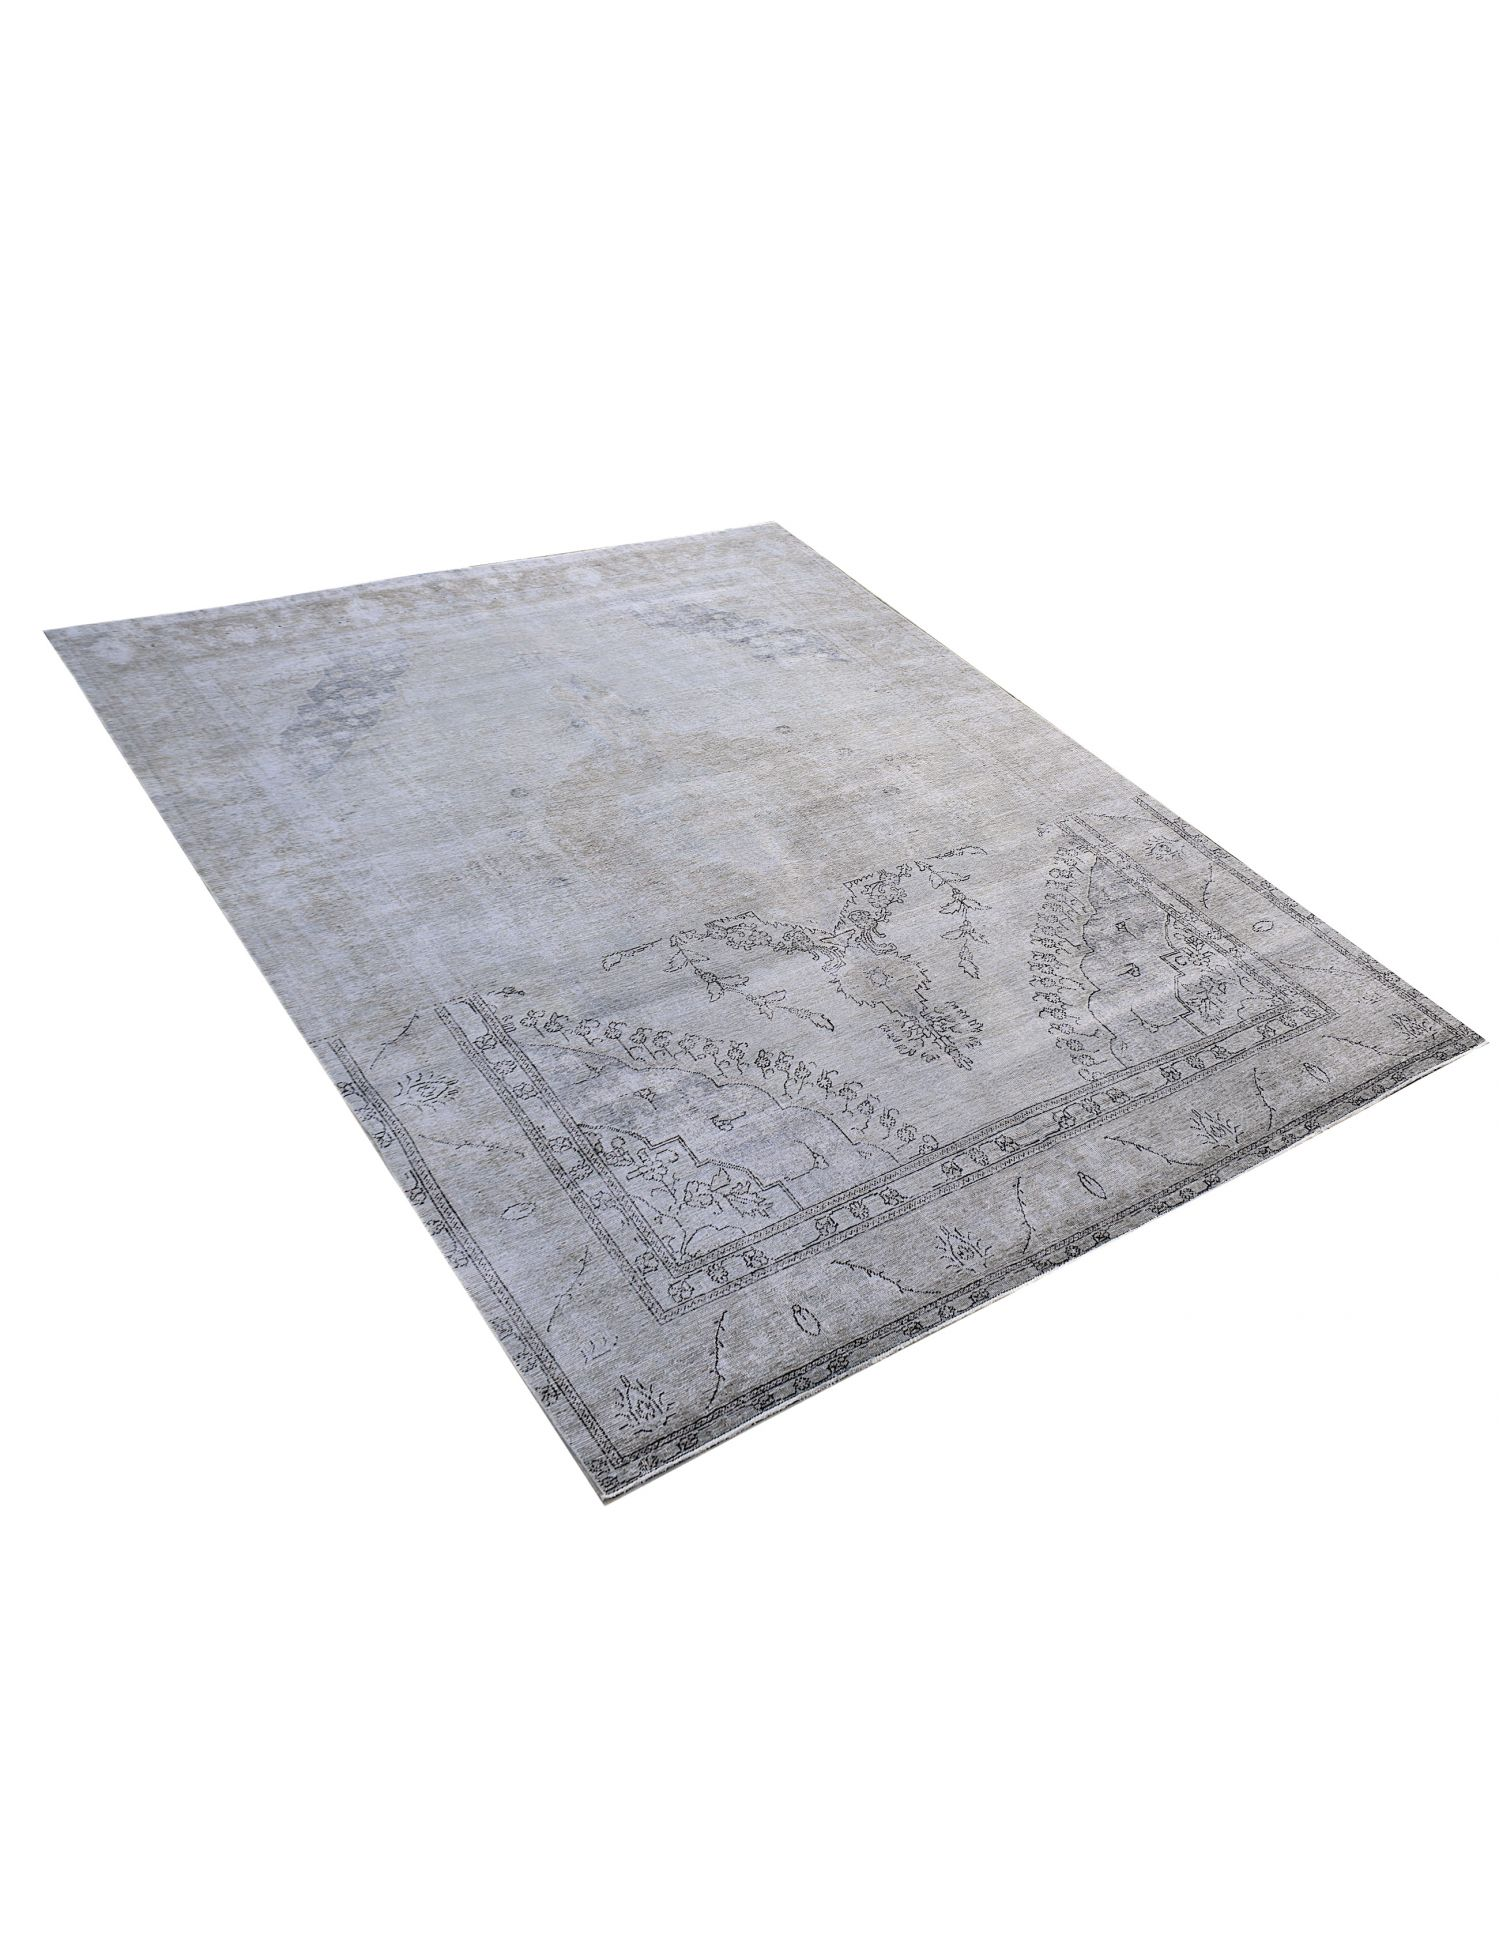 Vintage Carpet  grey <br/>383 x 284 cm